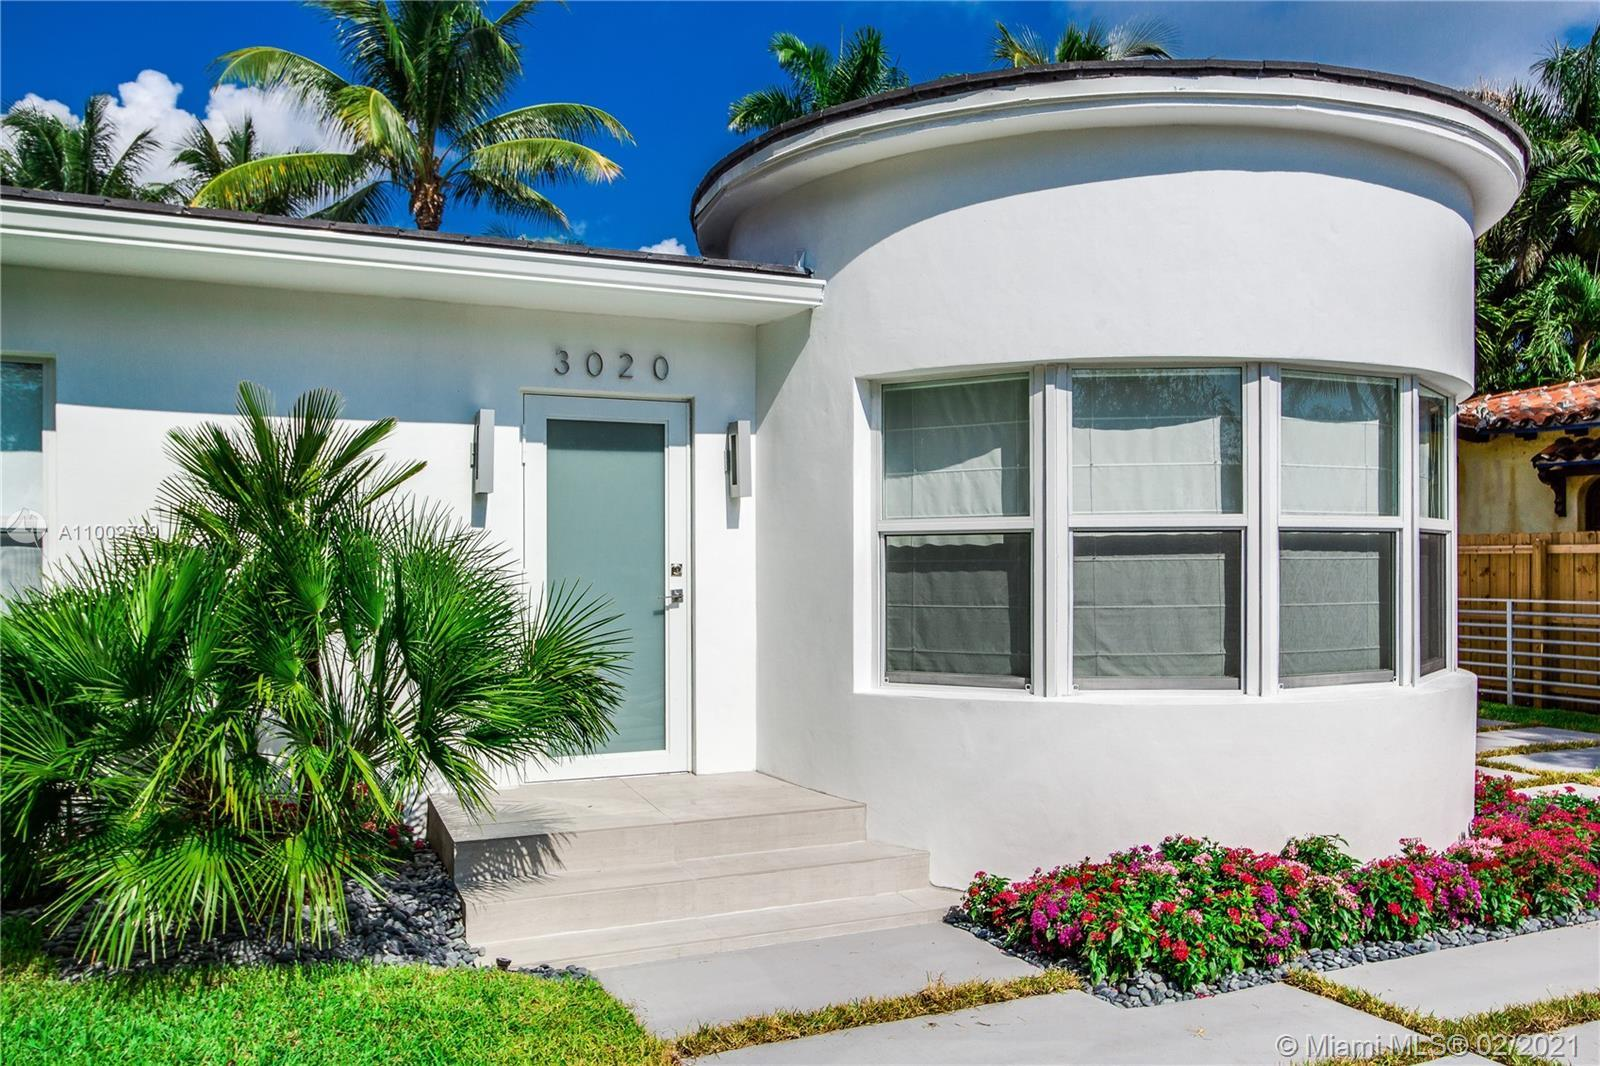 Golf Course and Pool Home in Miami Beach.   Renovated to in 2015. Tile roof, ceramic tile flooring e